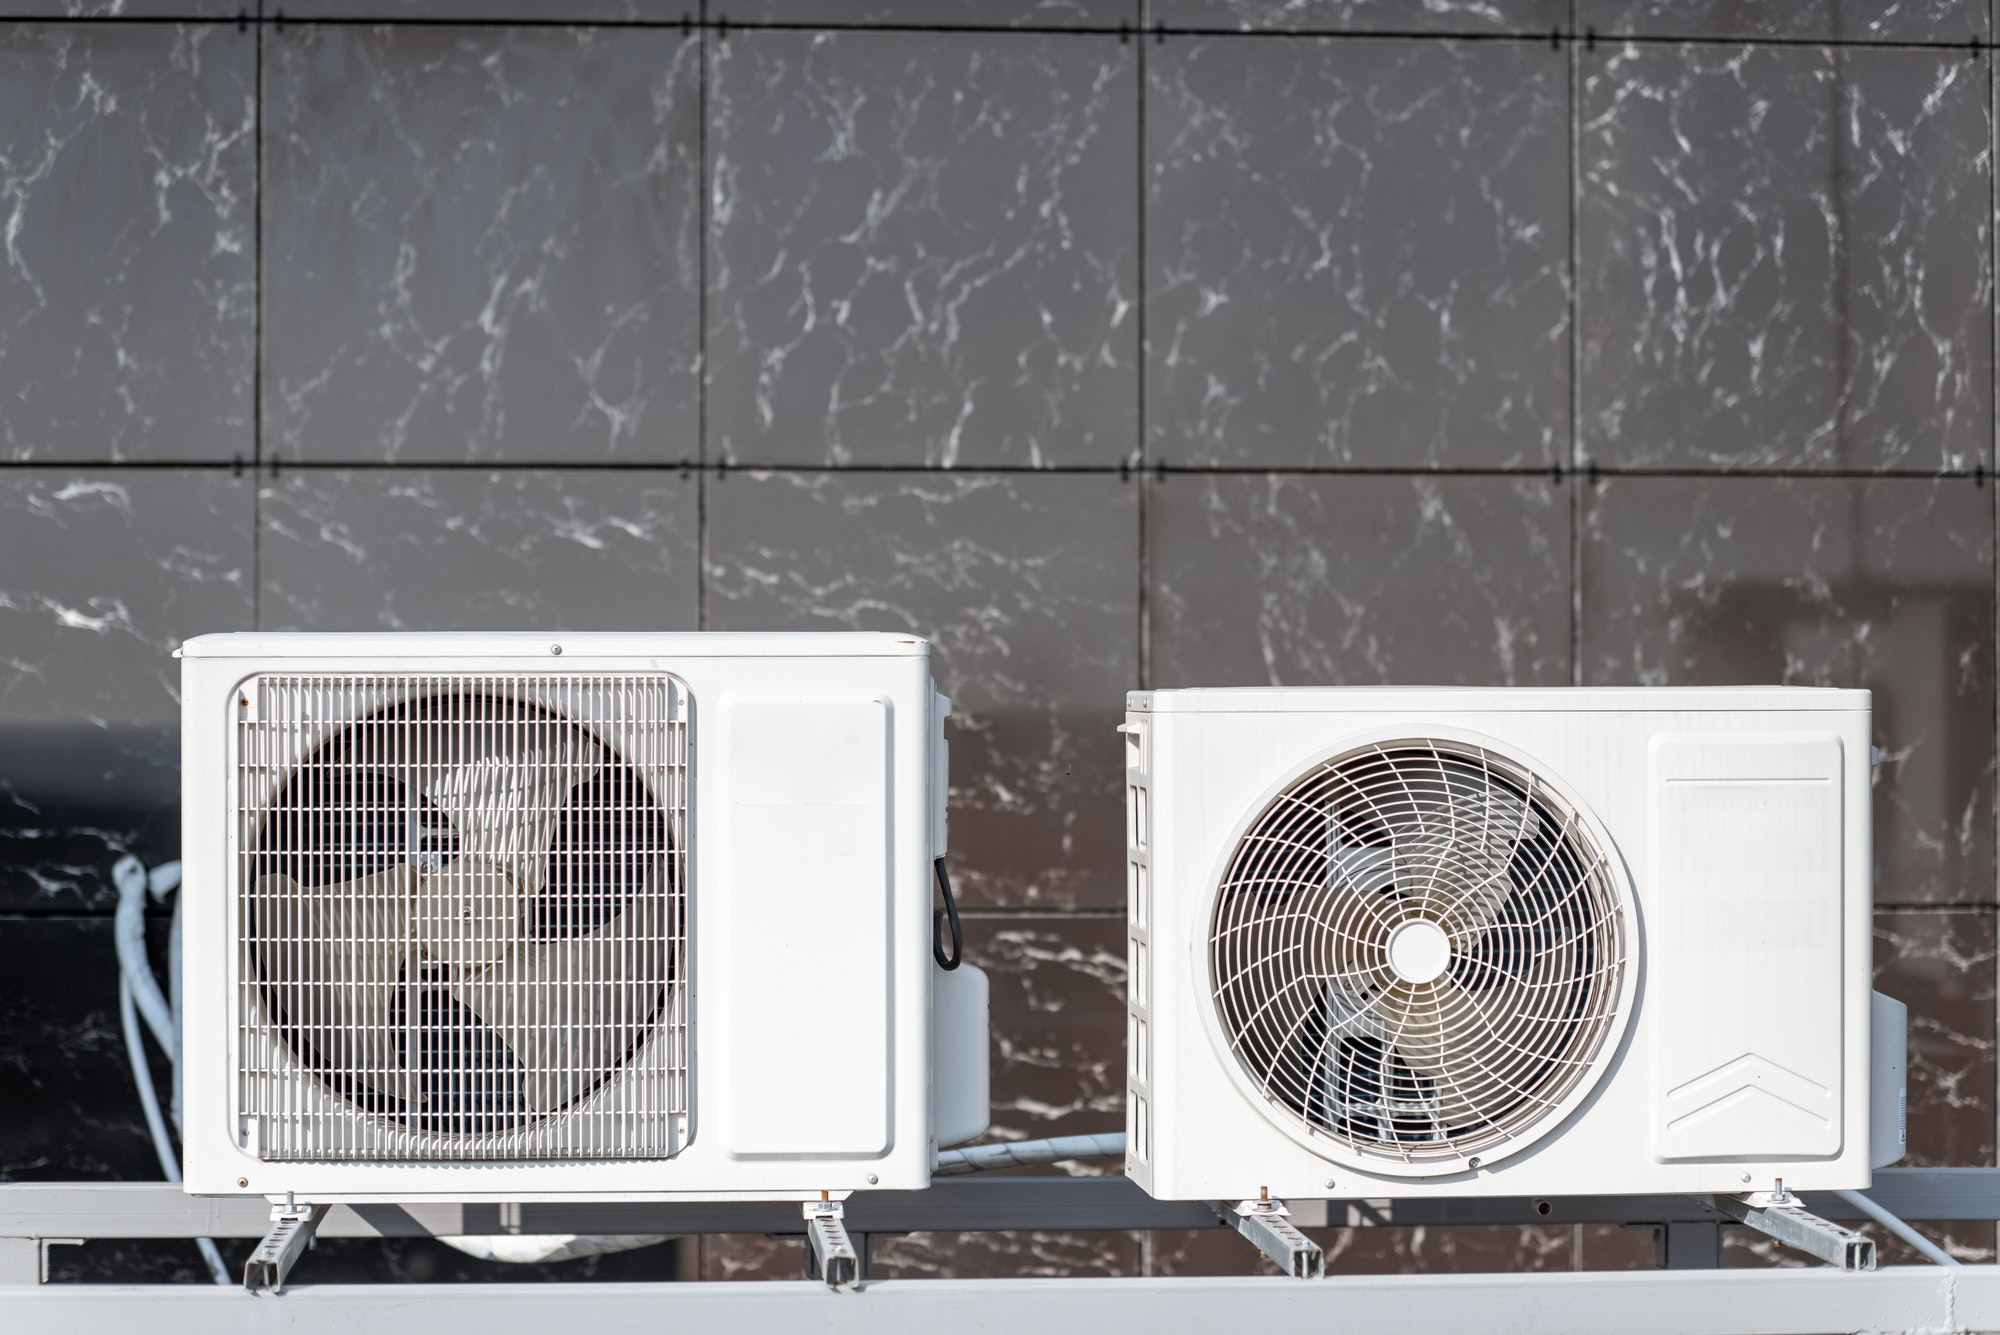 Outdoor units of the air conditioner